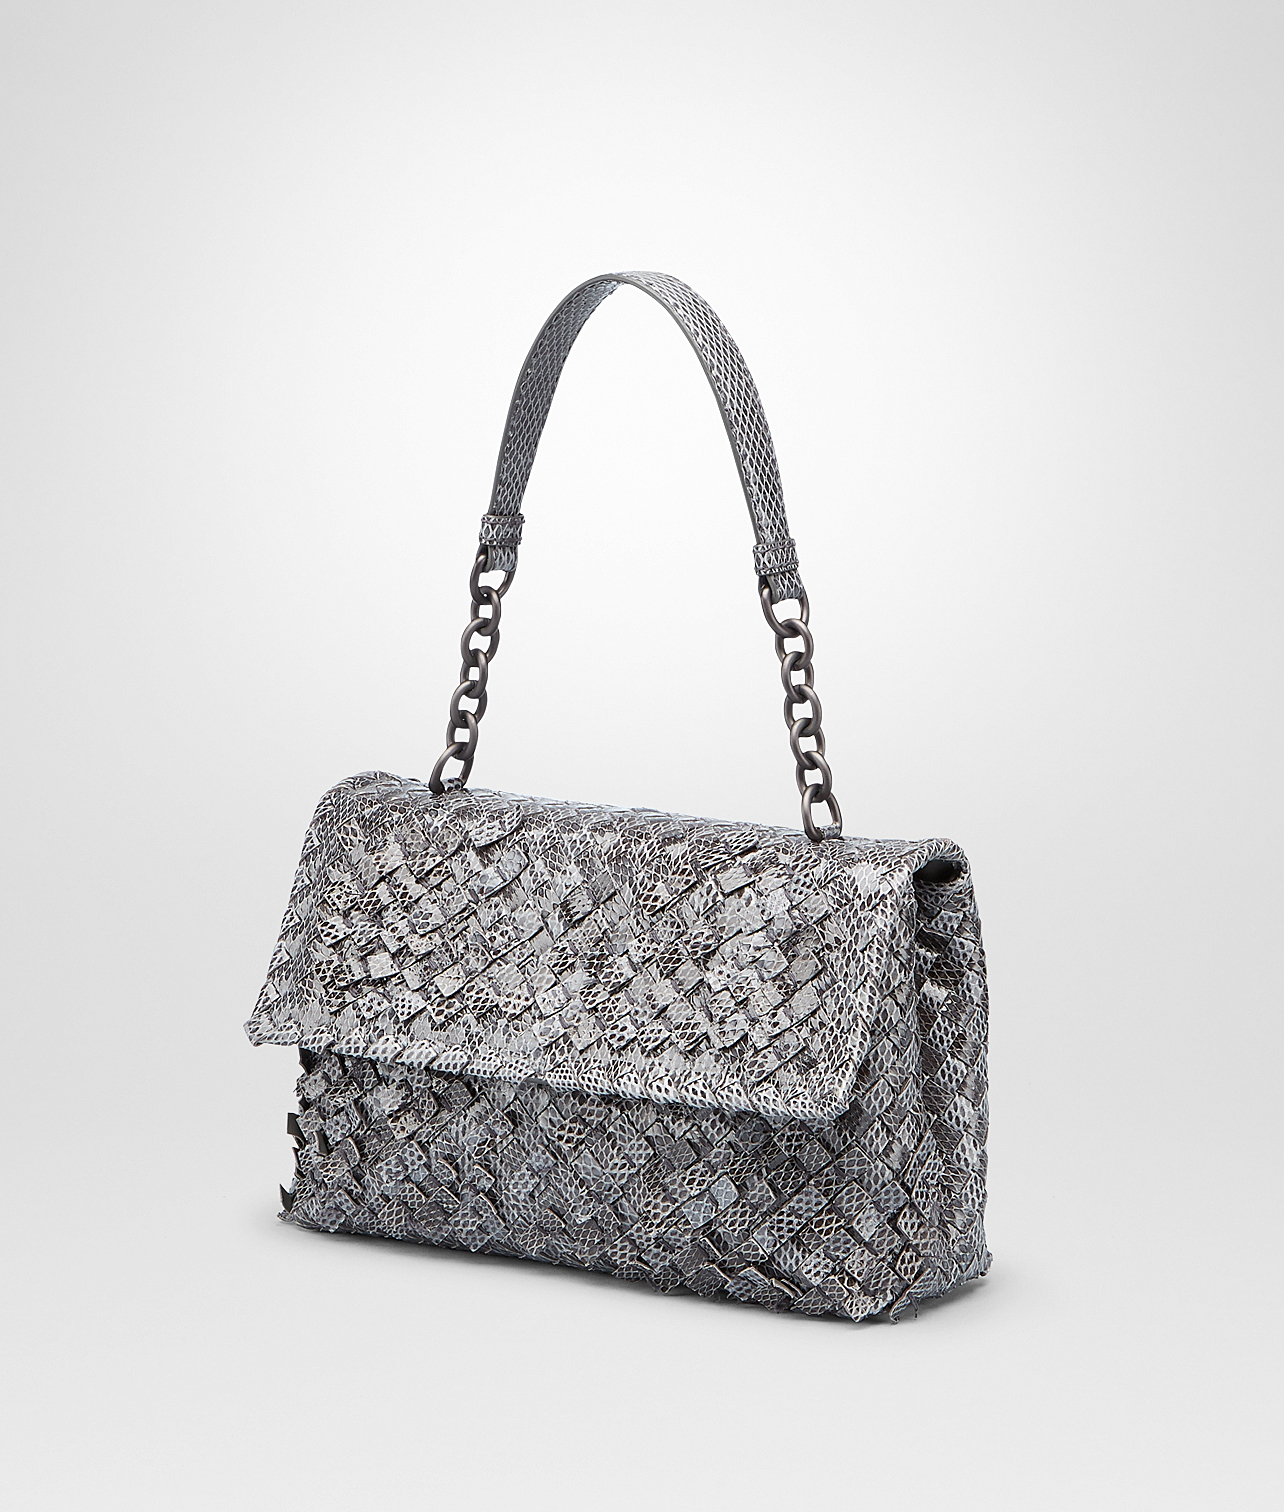 Bottega Veneta New Light Grey Intreccio Tobu Ayers Olimpia Bag in ... cc3e89f18d245